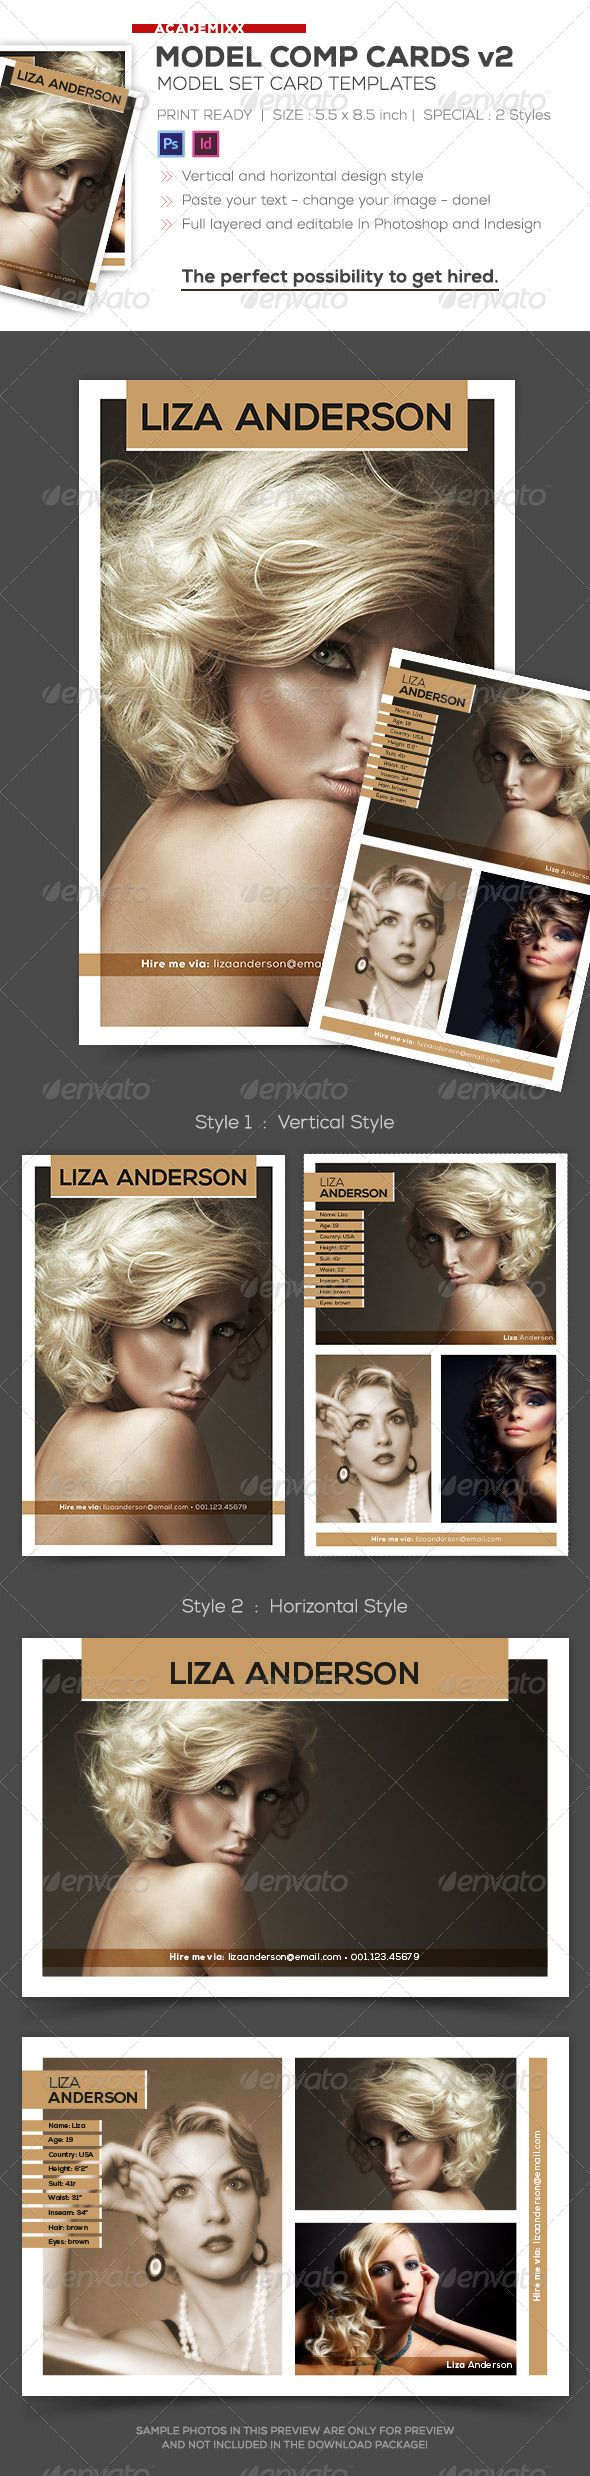 Model Comp And Set Card Templates V2 Photoshop Psd Modeling Agency Fashion Available Here Https Gr Model Comp Card Card Templates Free Card Templates